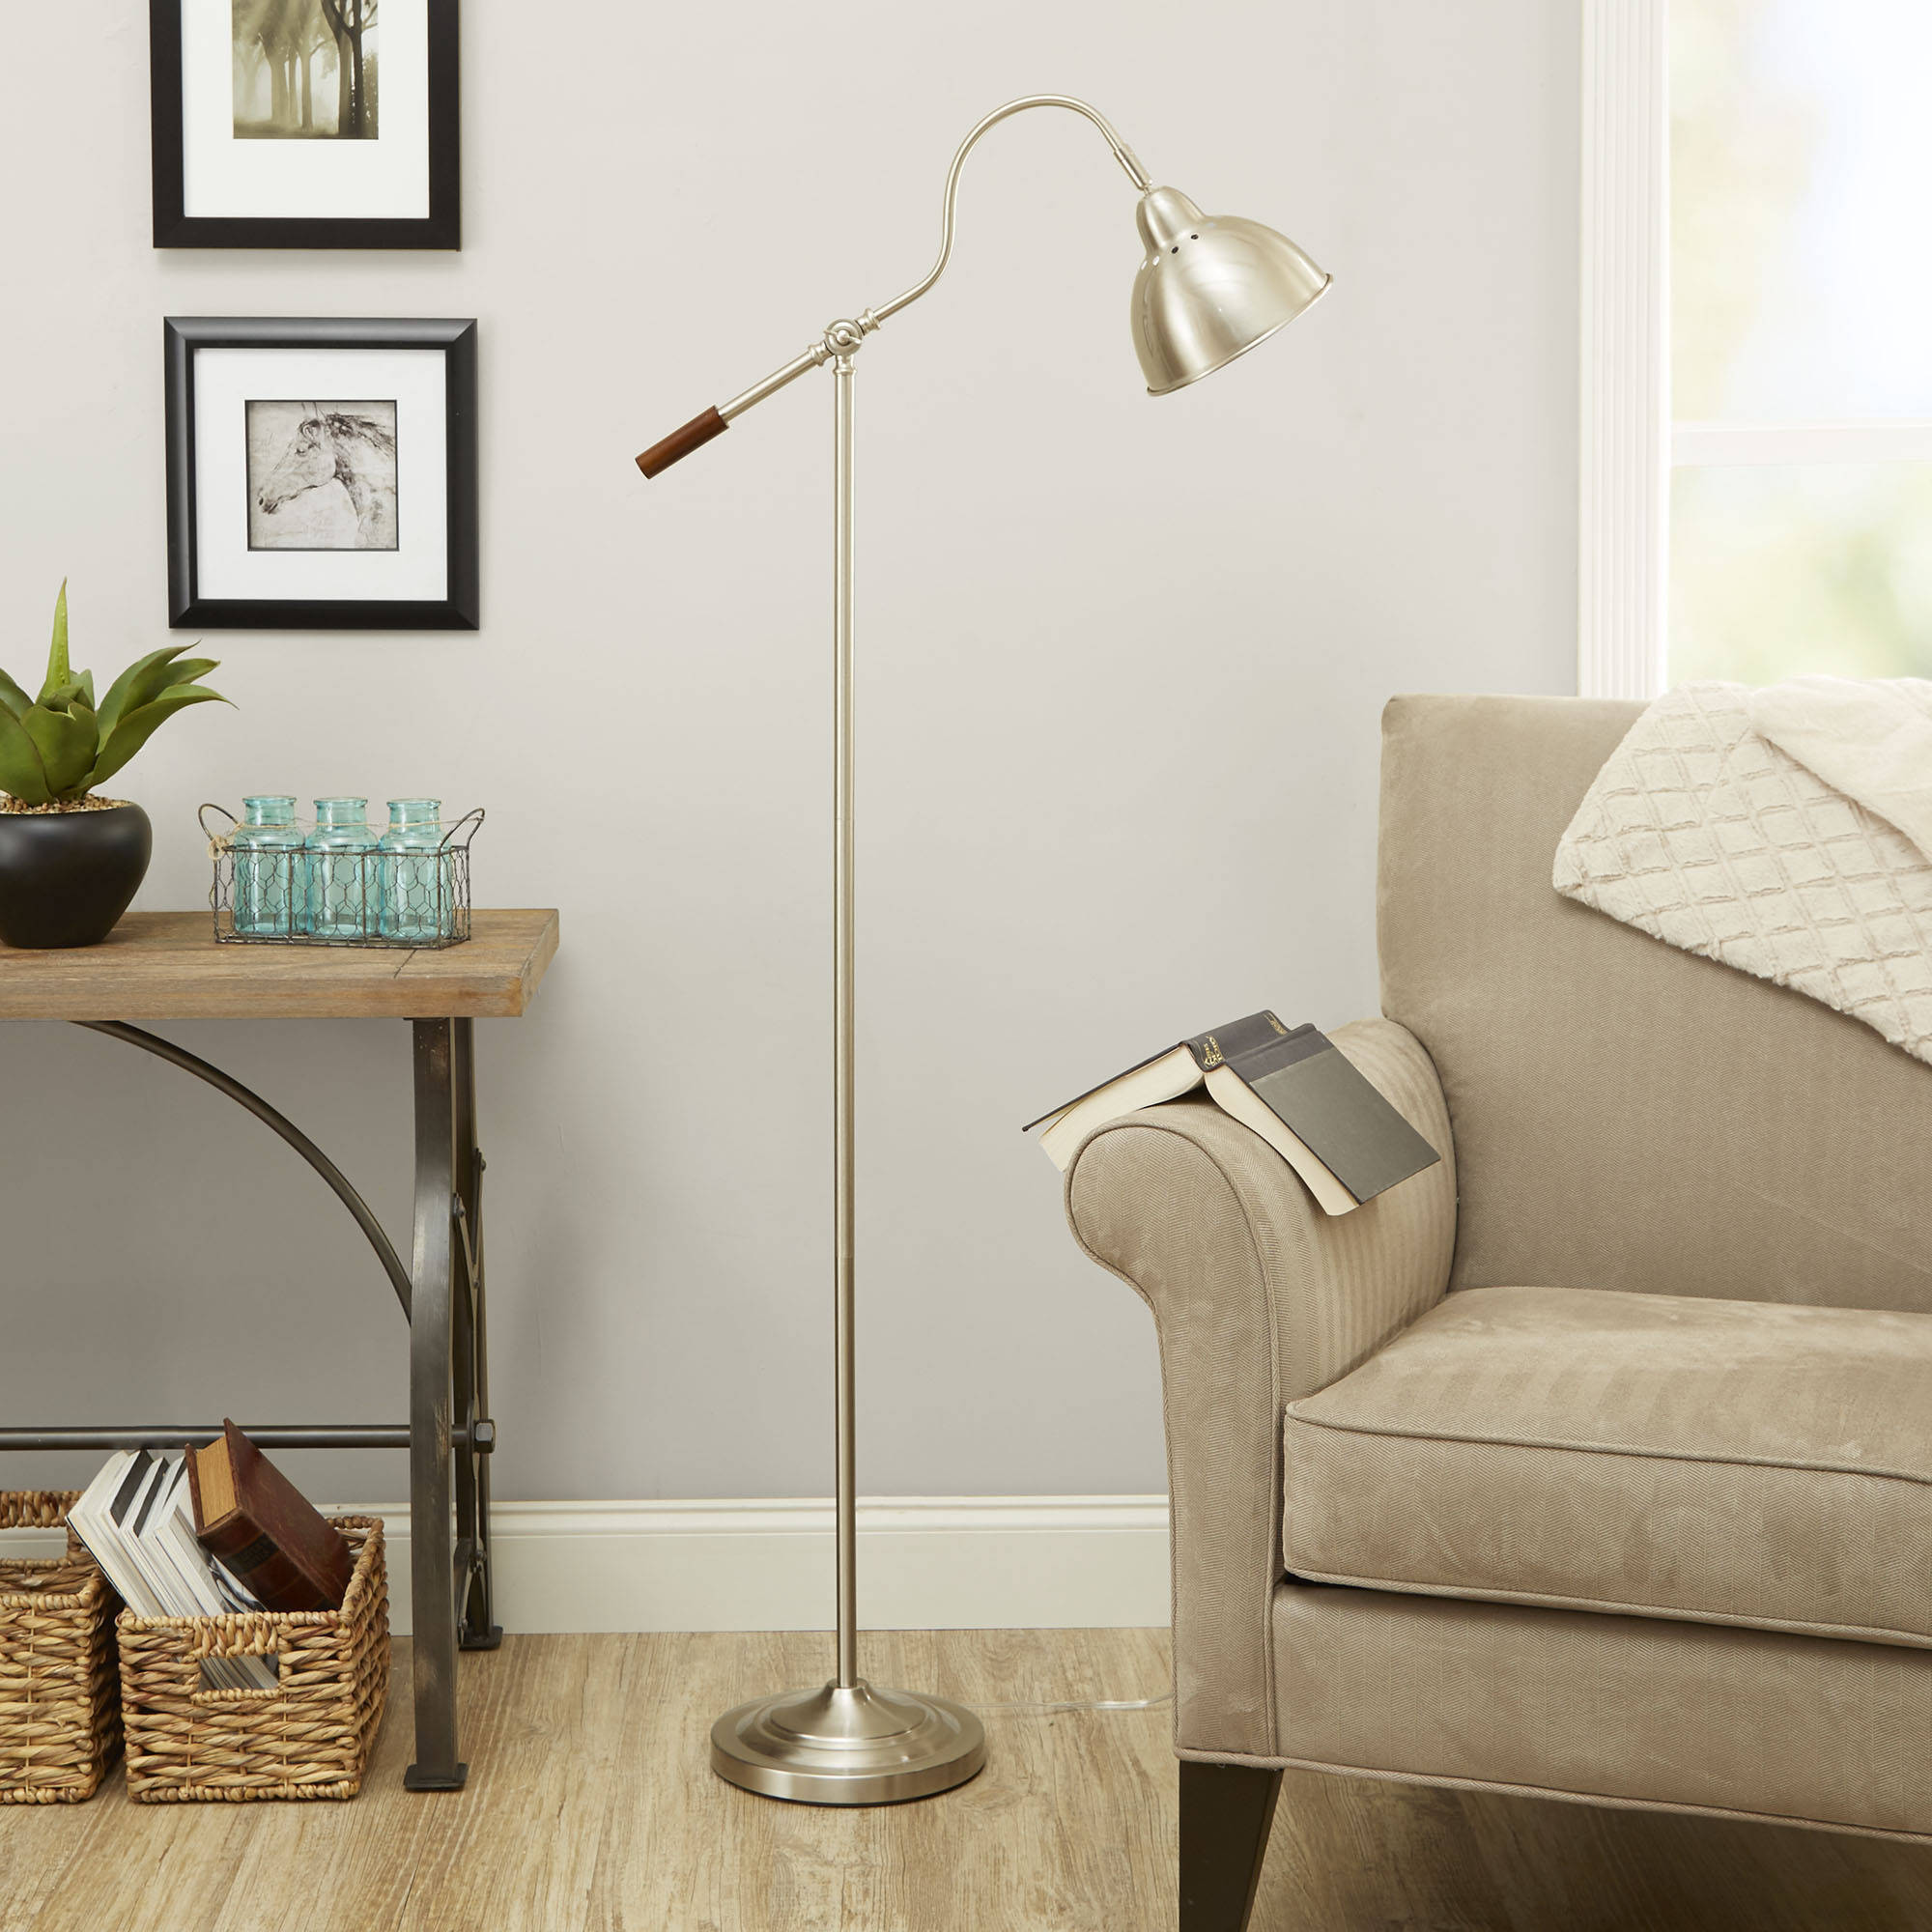 Better Homes & Gardens Adjustable Arm Metal Floor Lamp, Nickel by Cheyenne Products